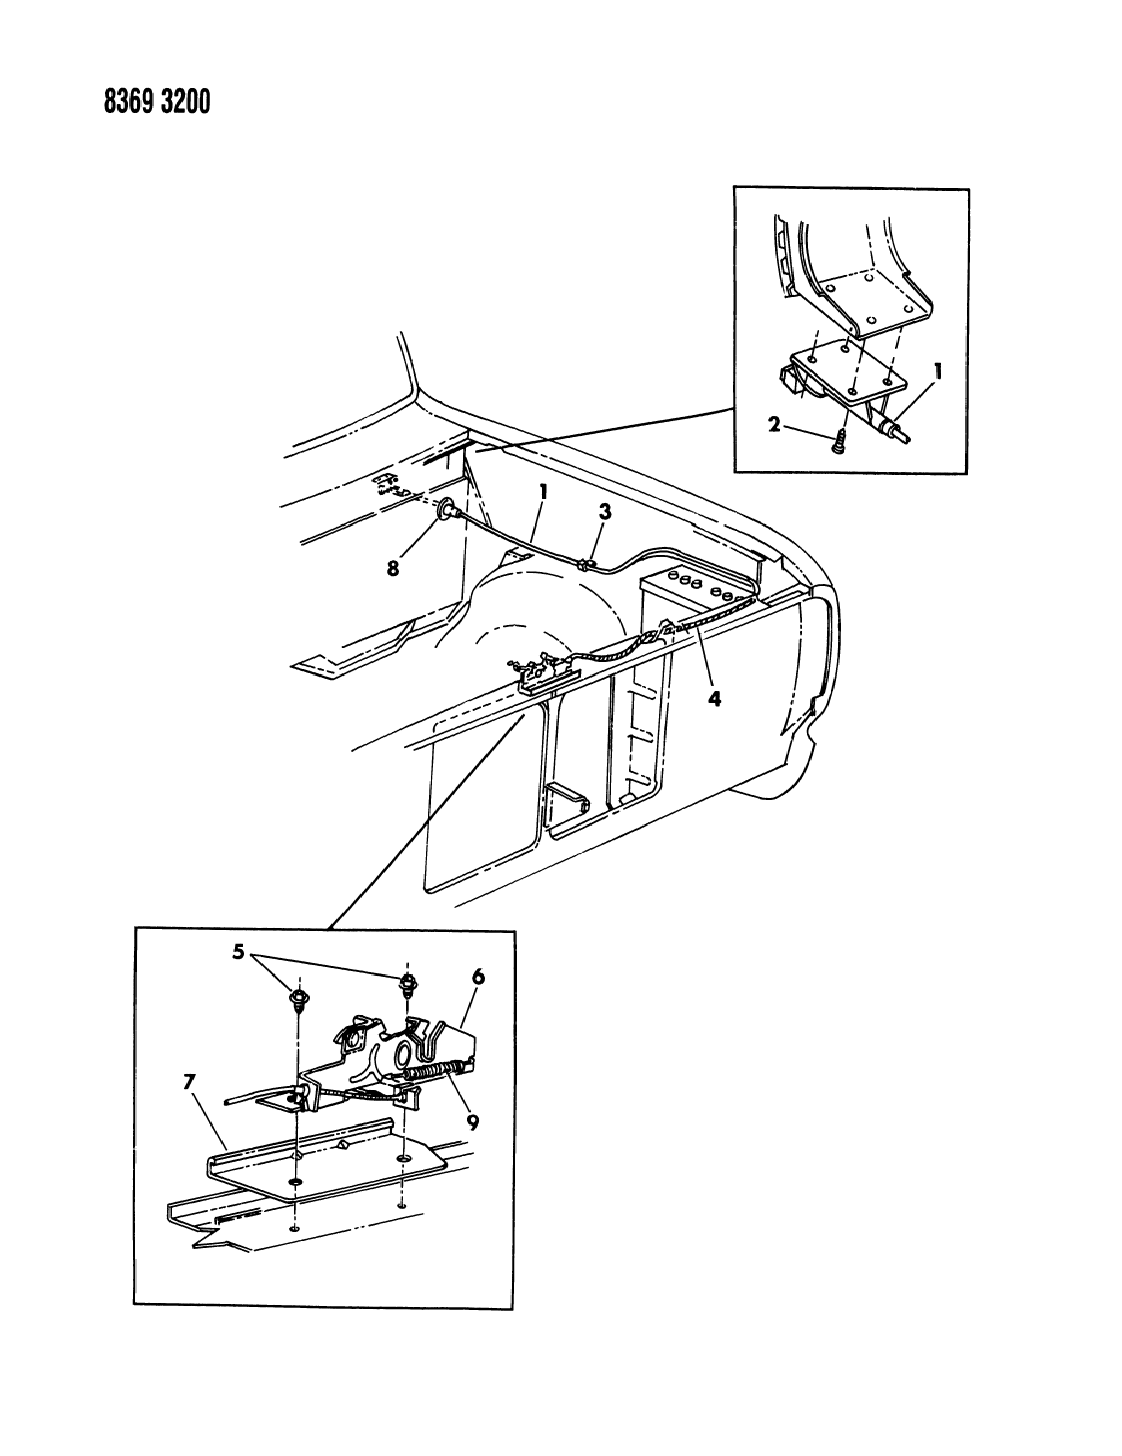 1988 Dodge W150 Hood Latch Release Assembly (In Cab) D1-8